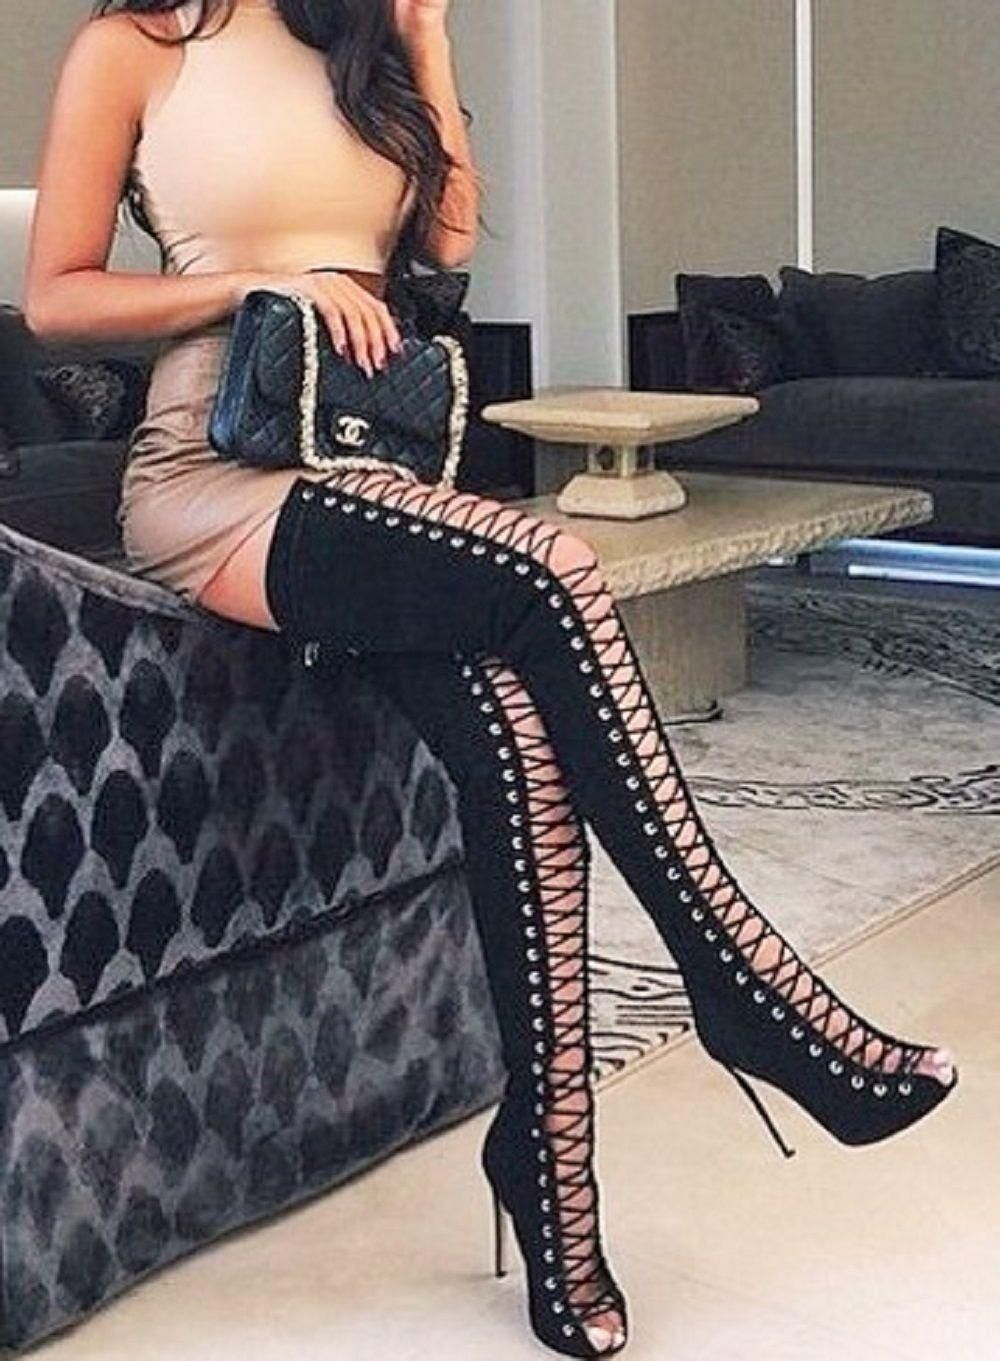 675ddc11dab Thigh High Open Toe Stiletto Heel Lace Up Ove Knee Boots Nubuck Gladiator  Women